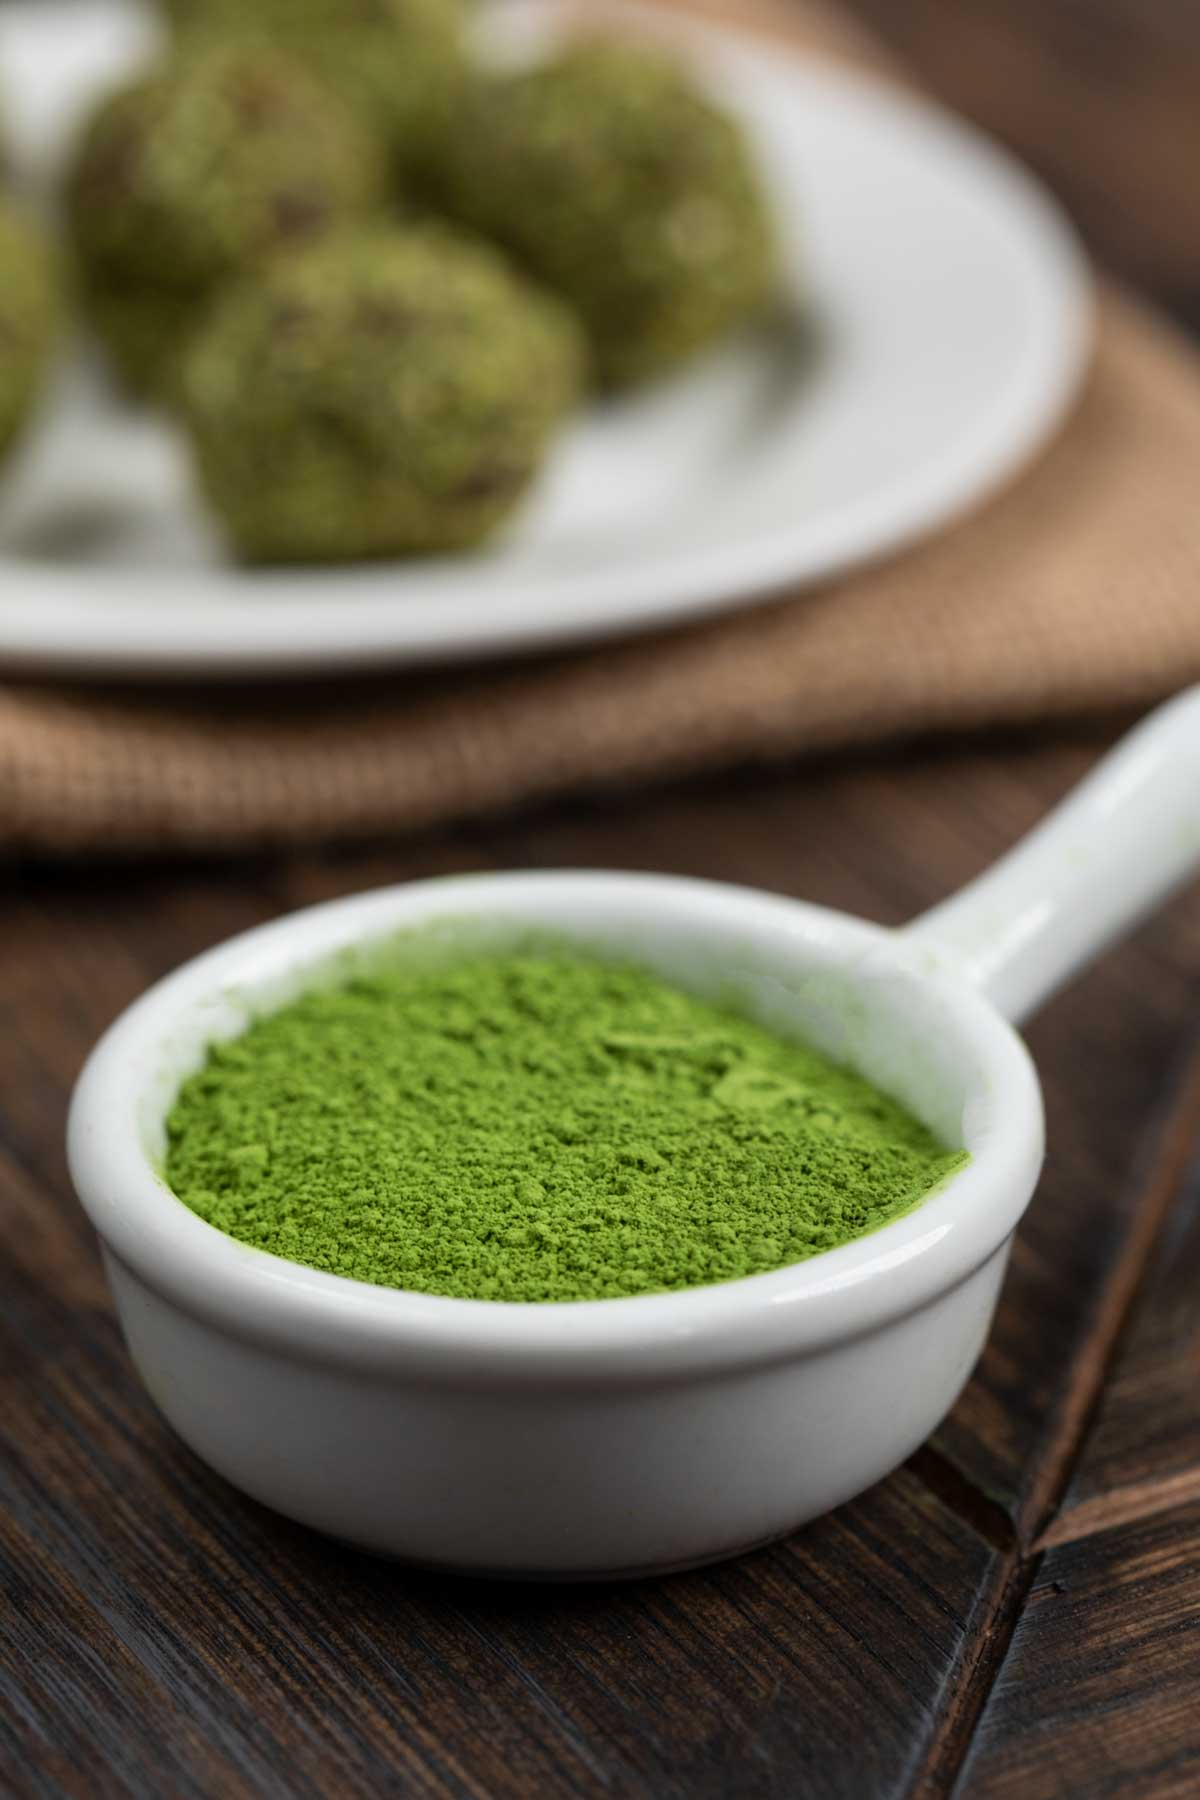 A small white bowl filled with matcha green tea powder, with a plate of energy balls in the background.